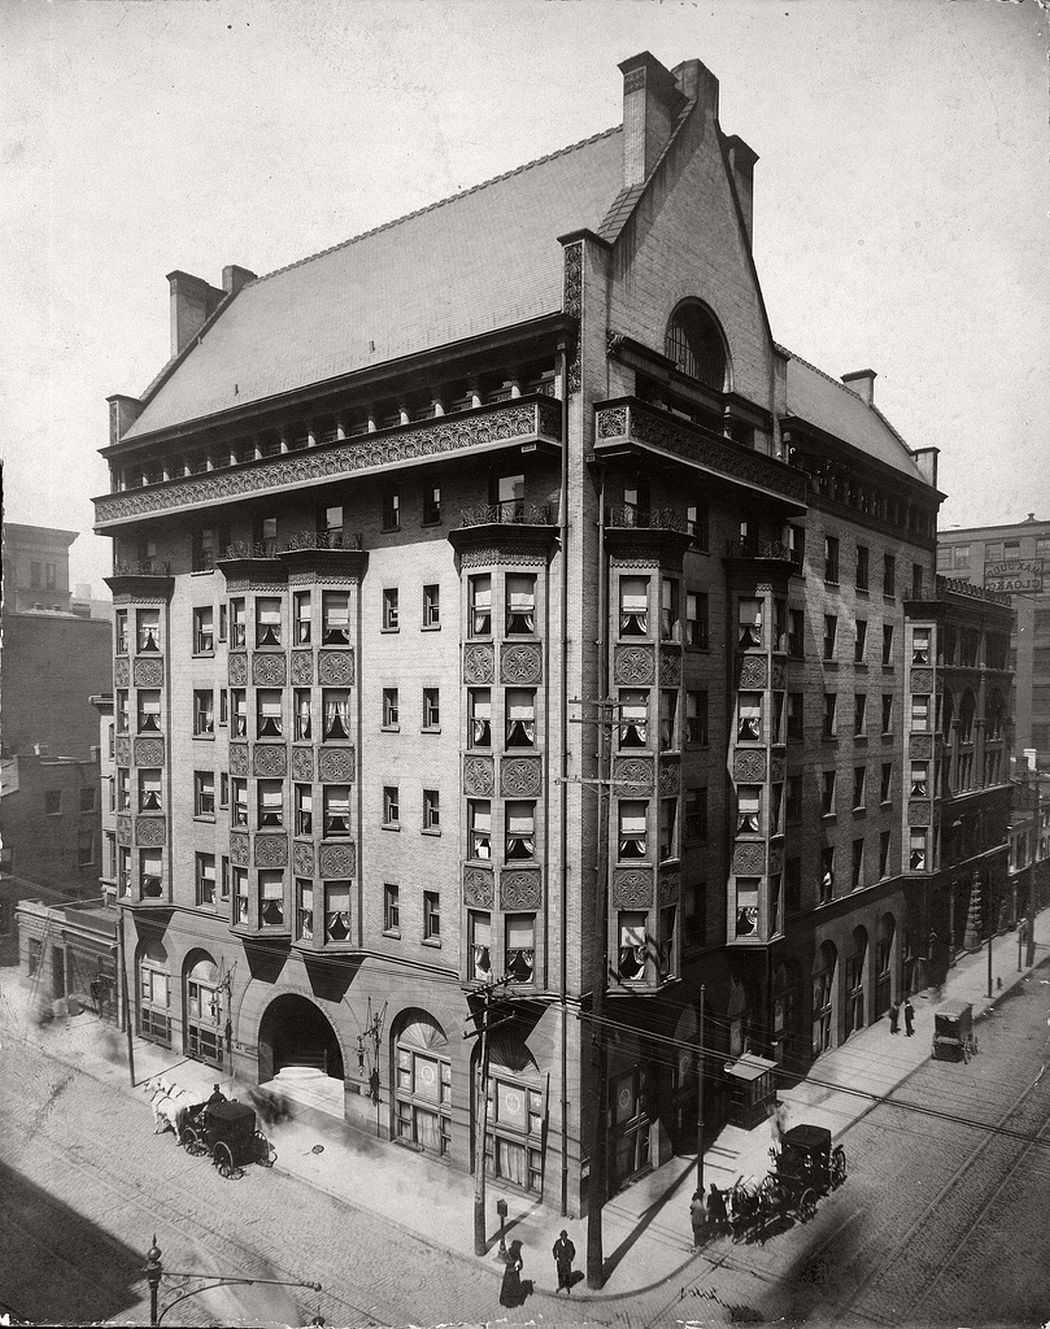 St. Nicholas Hotel, 407 North Eighth Street (northwest corner of Eighth and Locust Streets, also known as the Victoria Building), 1905